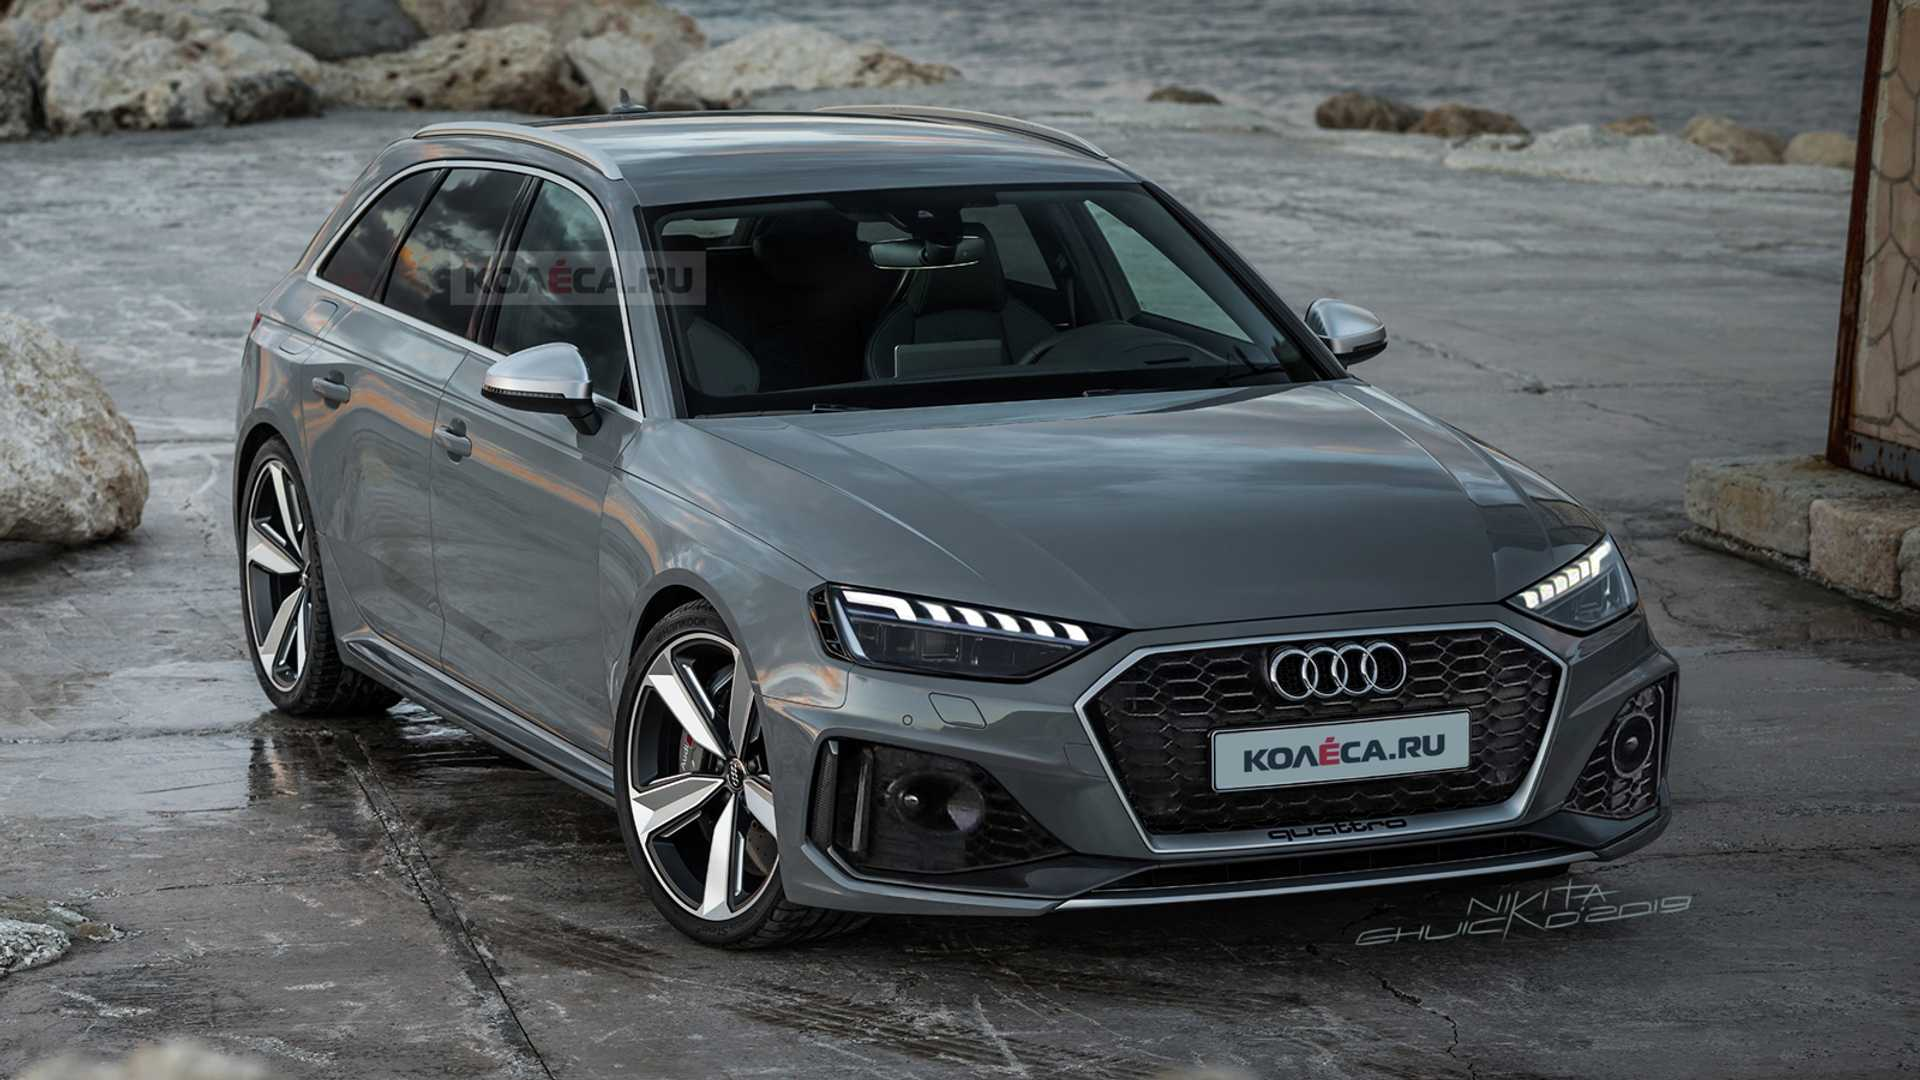 86 All New Audi Rs4 2020 Specs and Review with Audi Rs4 2020